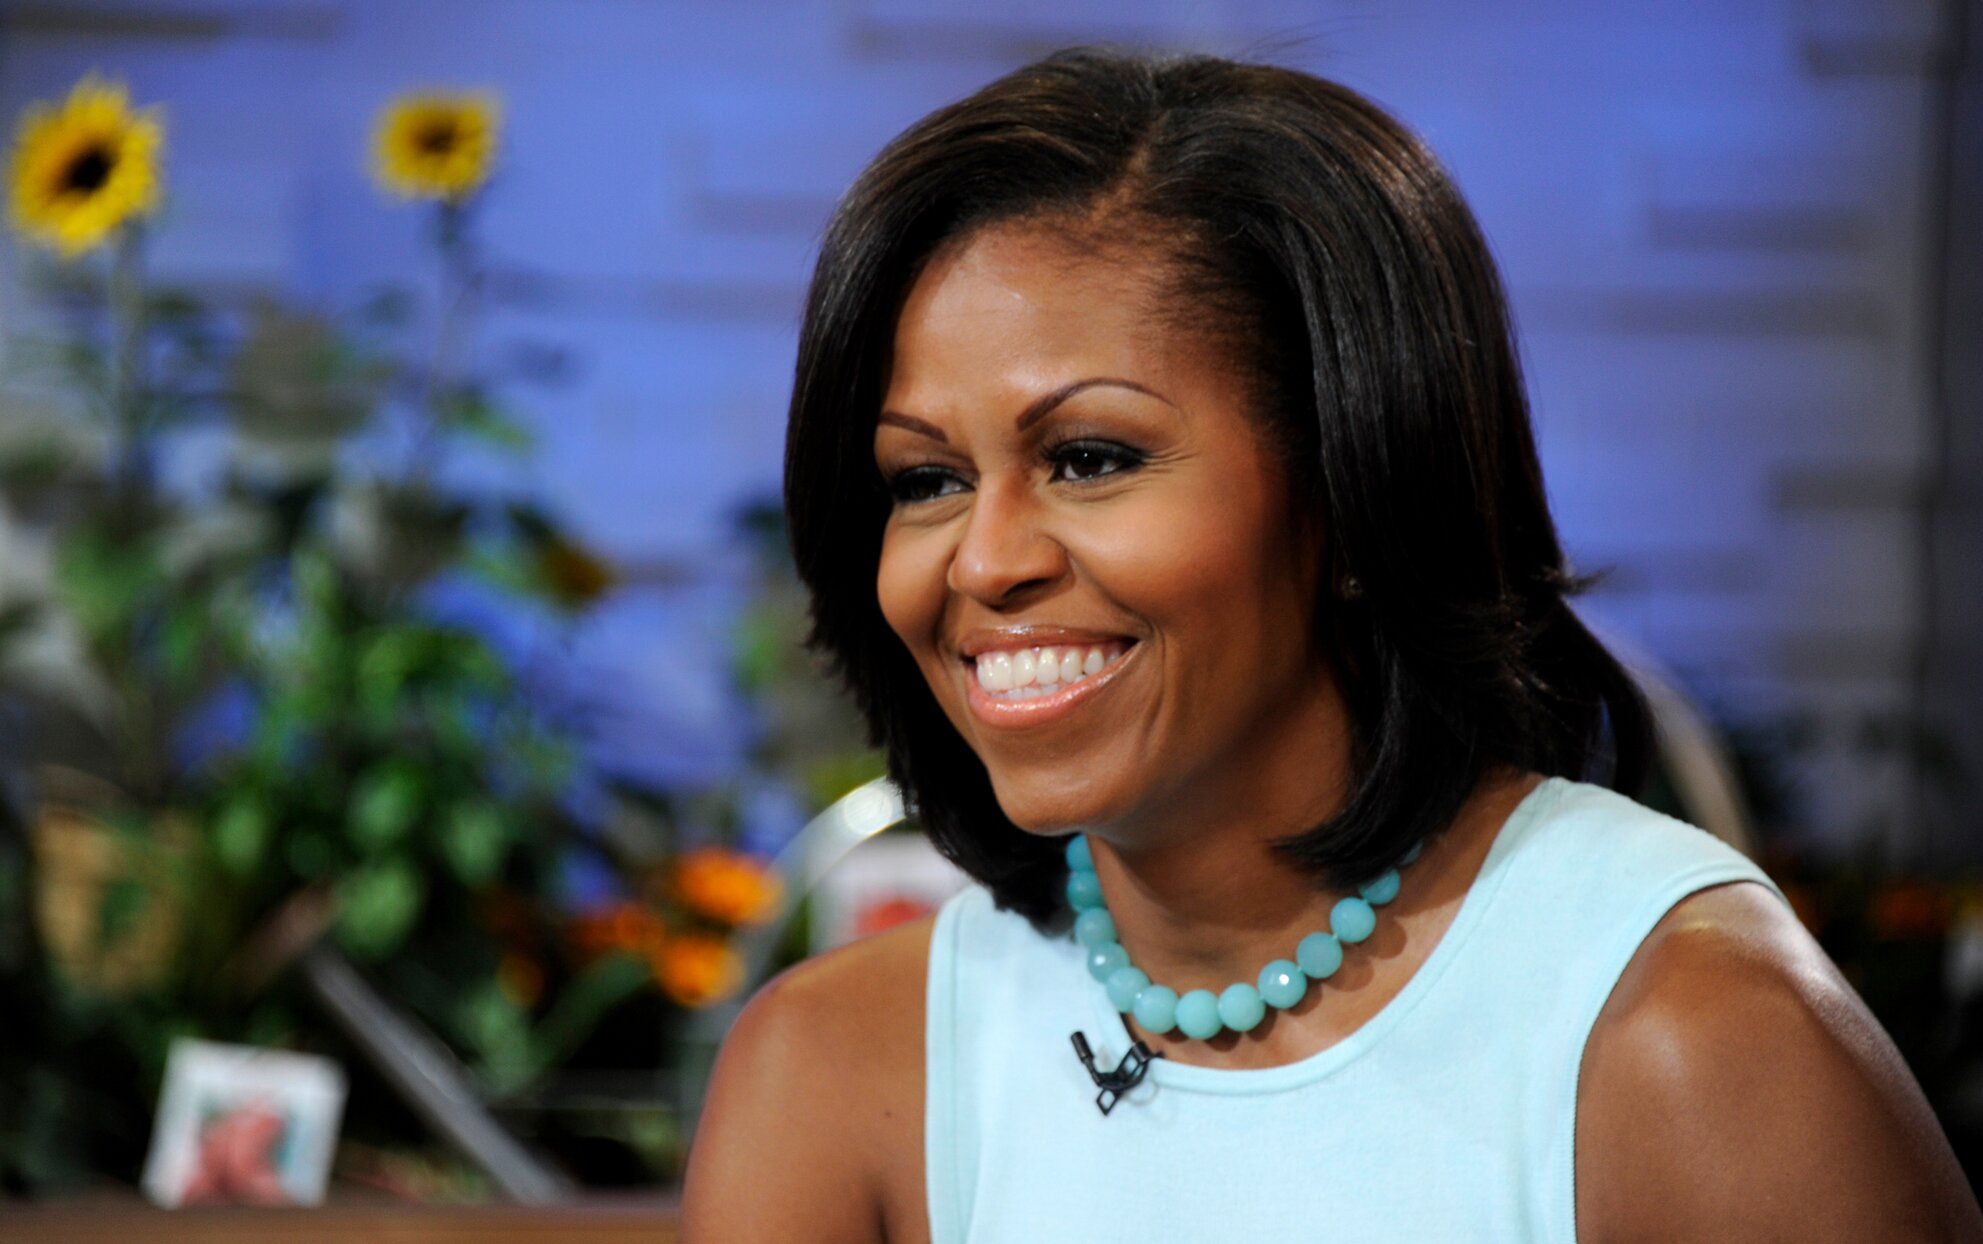 Michelle Obama in turquoise top